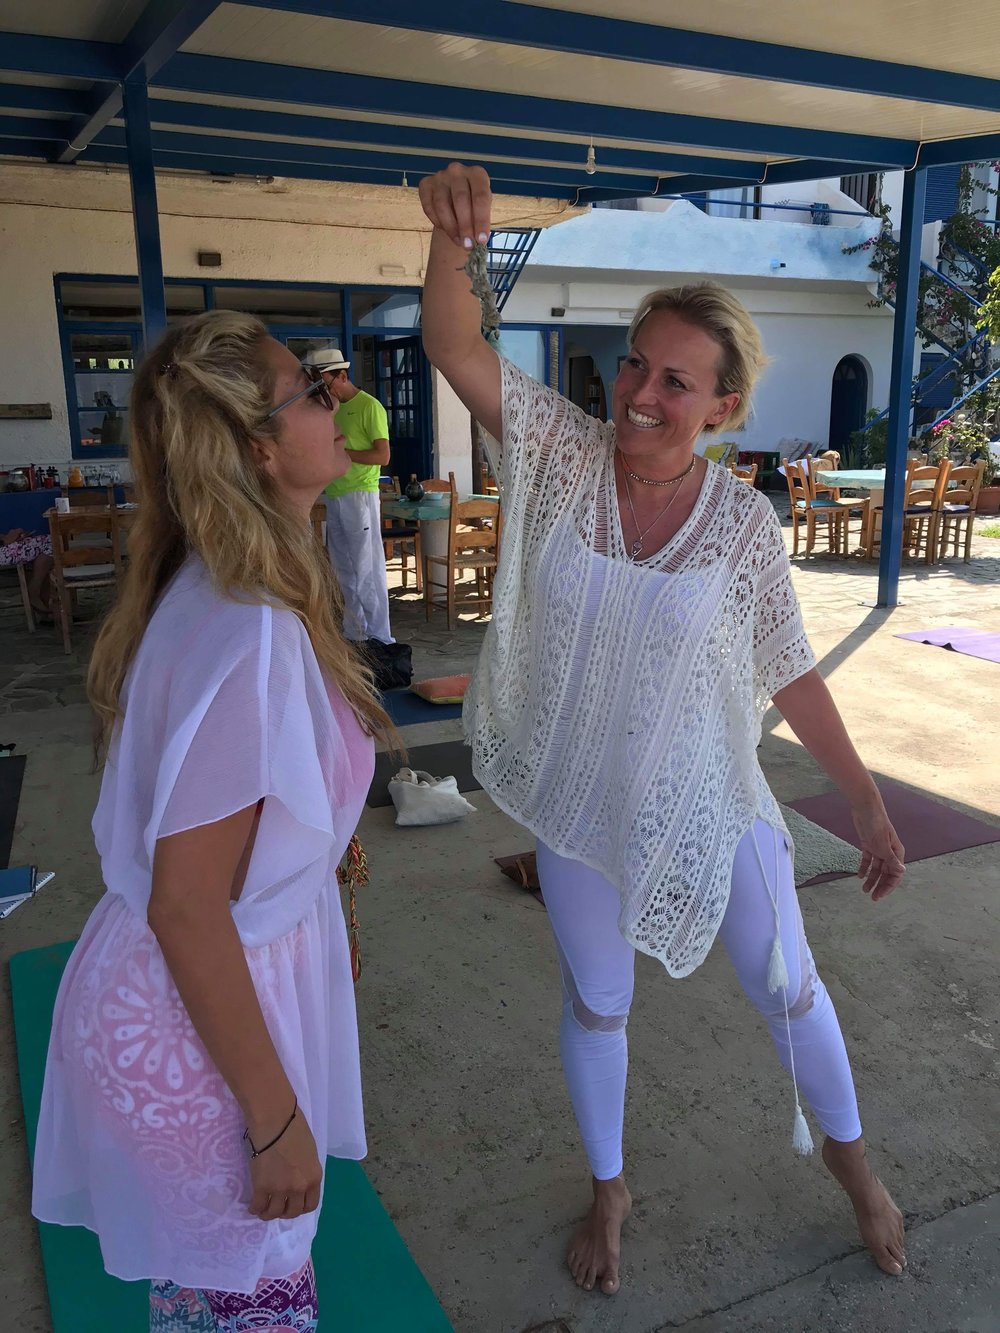 Kundalini Yoga can help with: - Day to day health and wellbeingBalancing of hormonesThyroid problemsSpecific fitness issuesDepressionAddictionYouth and VitalityMood SwingsWeight IssuesAnxietyLack of EnergyAnd much more...